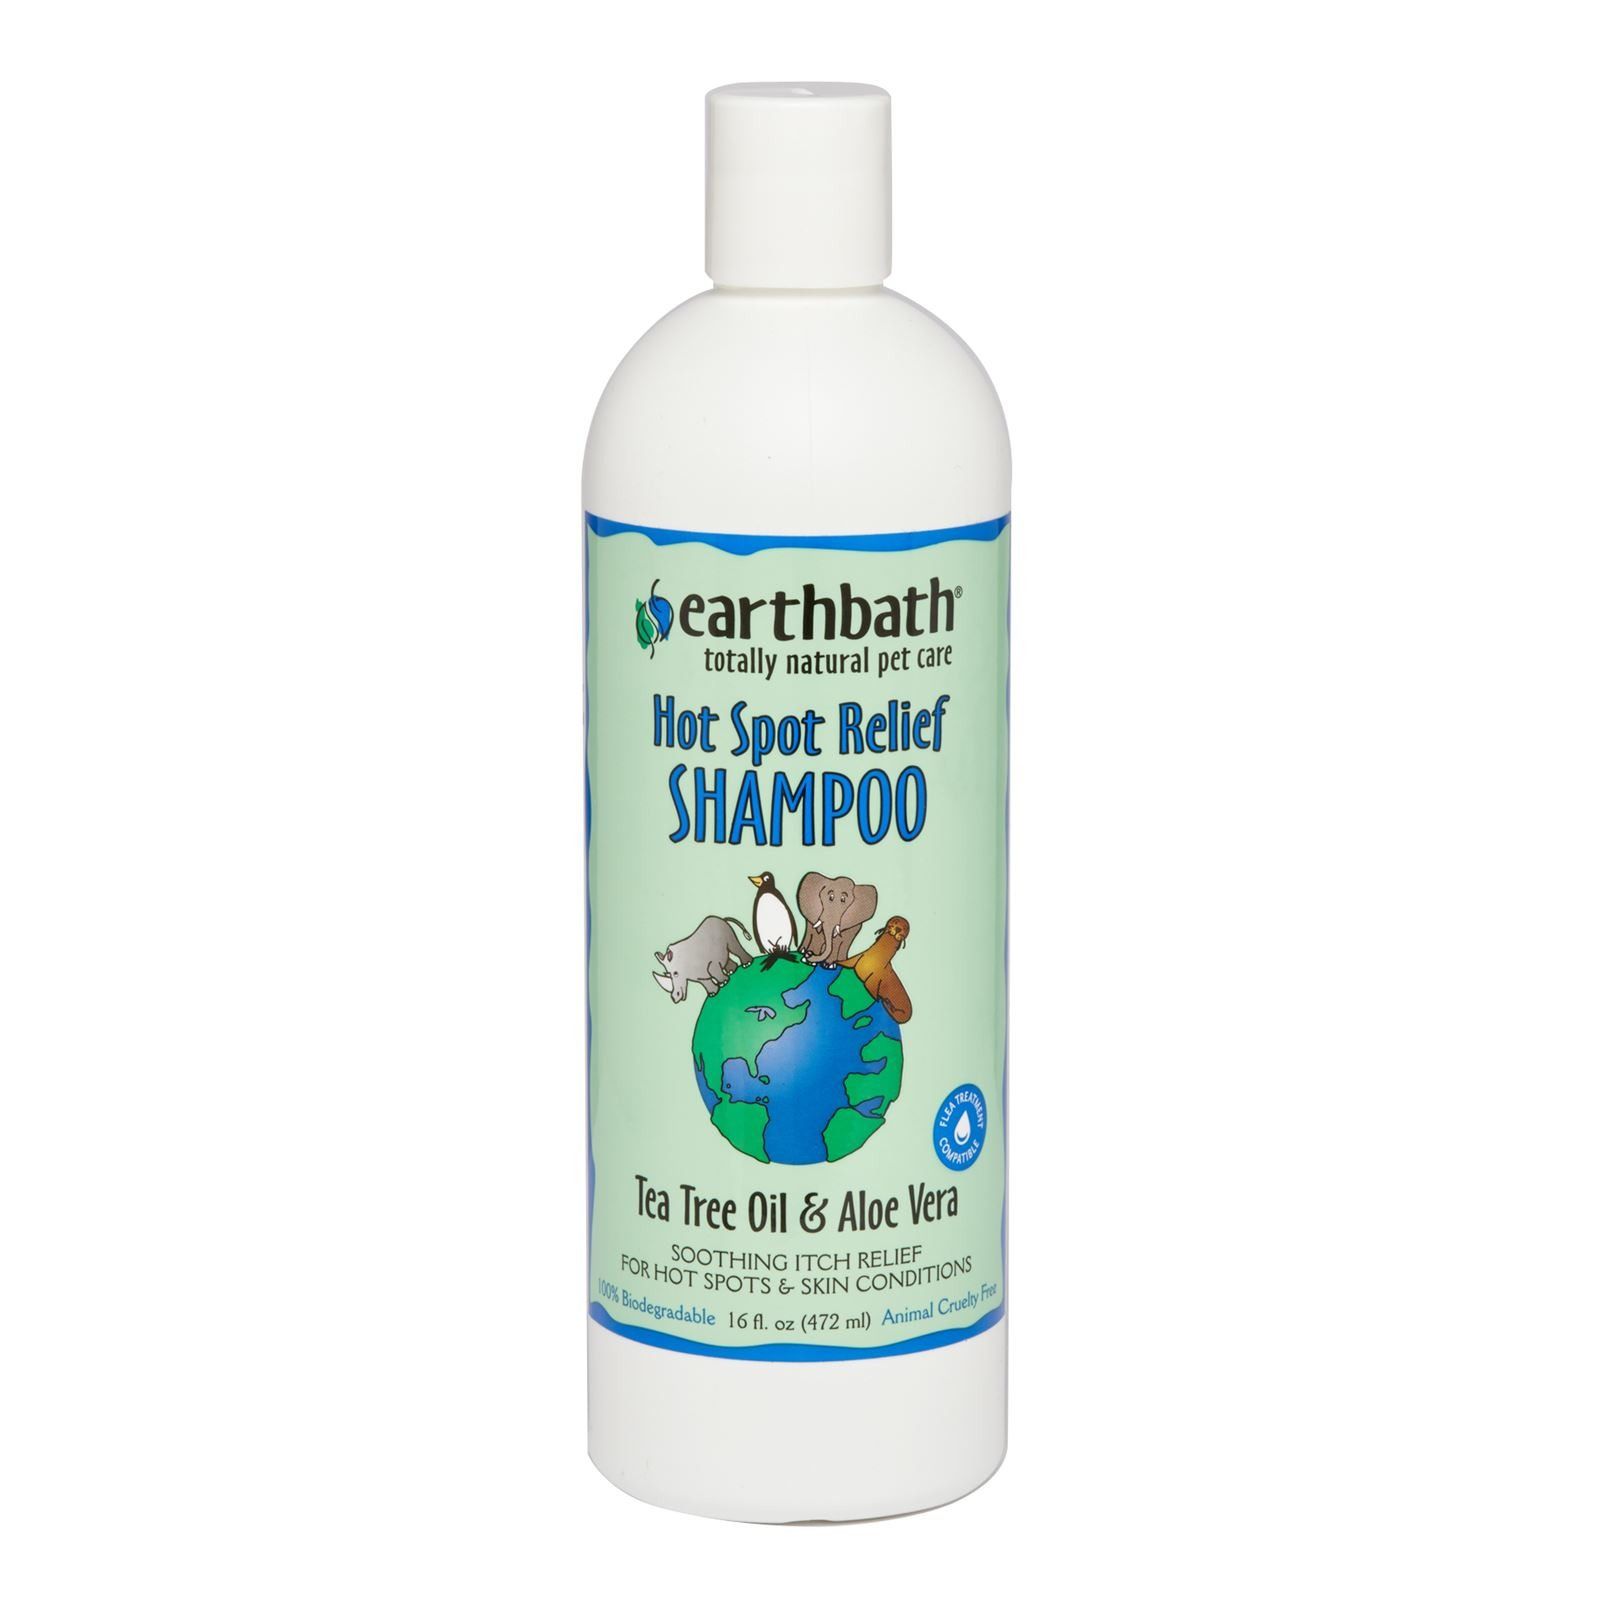 Earthbath Tea Tree & Aloe Vera Shampoo